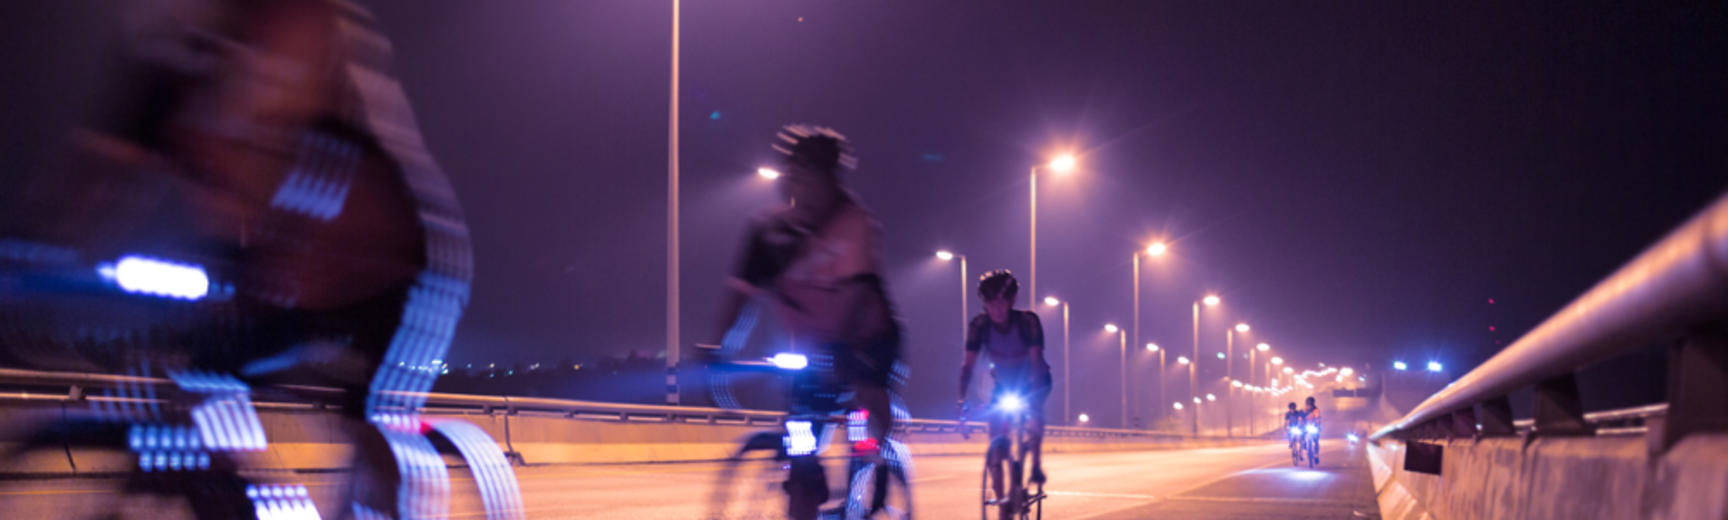 Image of cyclists riding at night with lights on bike